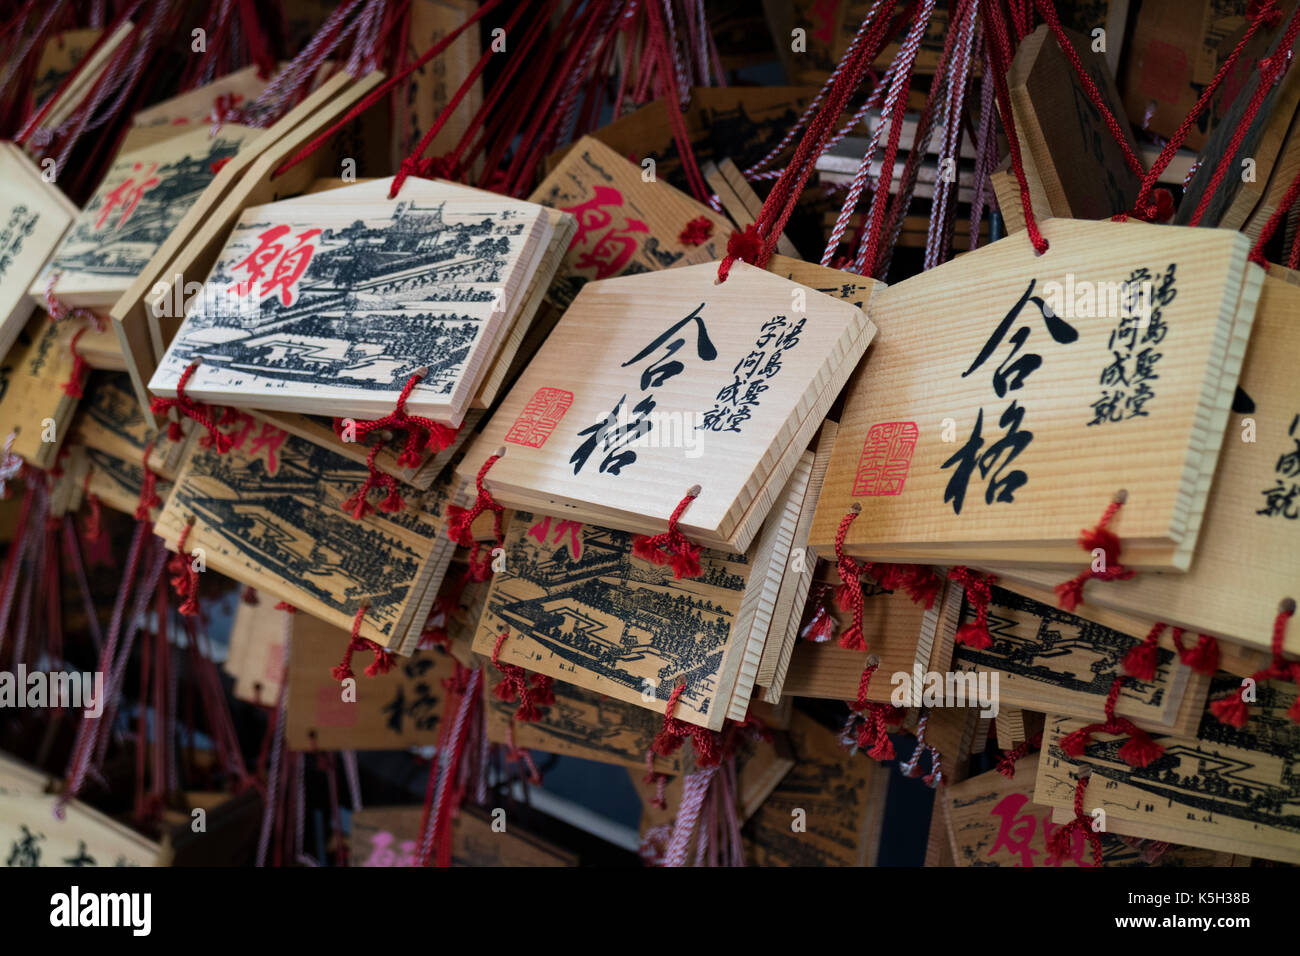 Tokyo, Japan - May 14, 2017:  Ema, small wooden plaques with wishes or prayers written on them - Stock Image